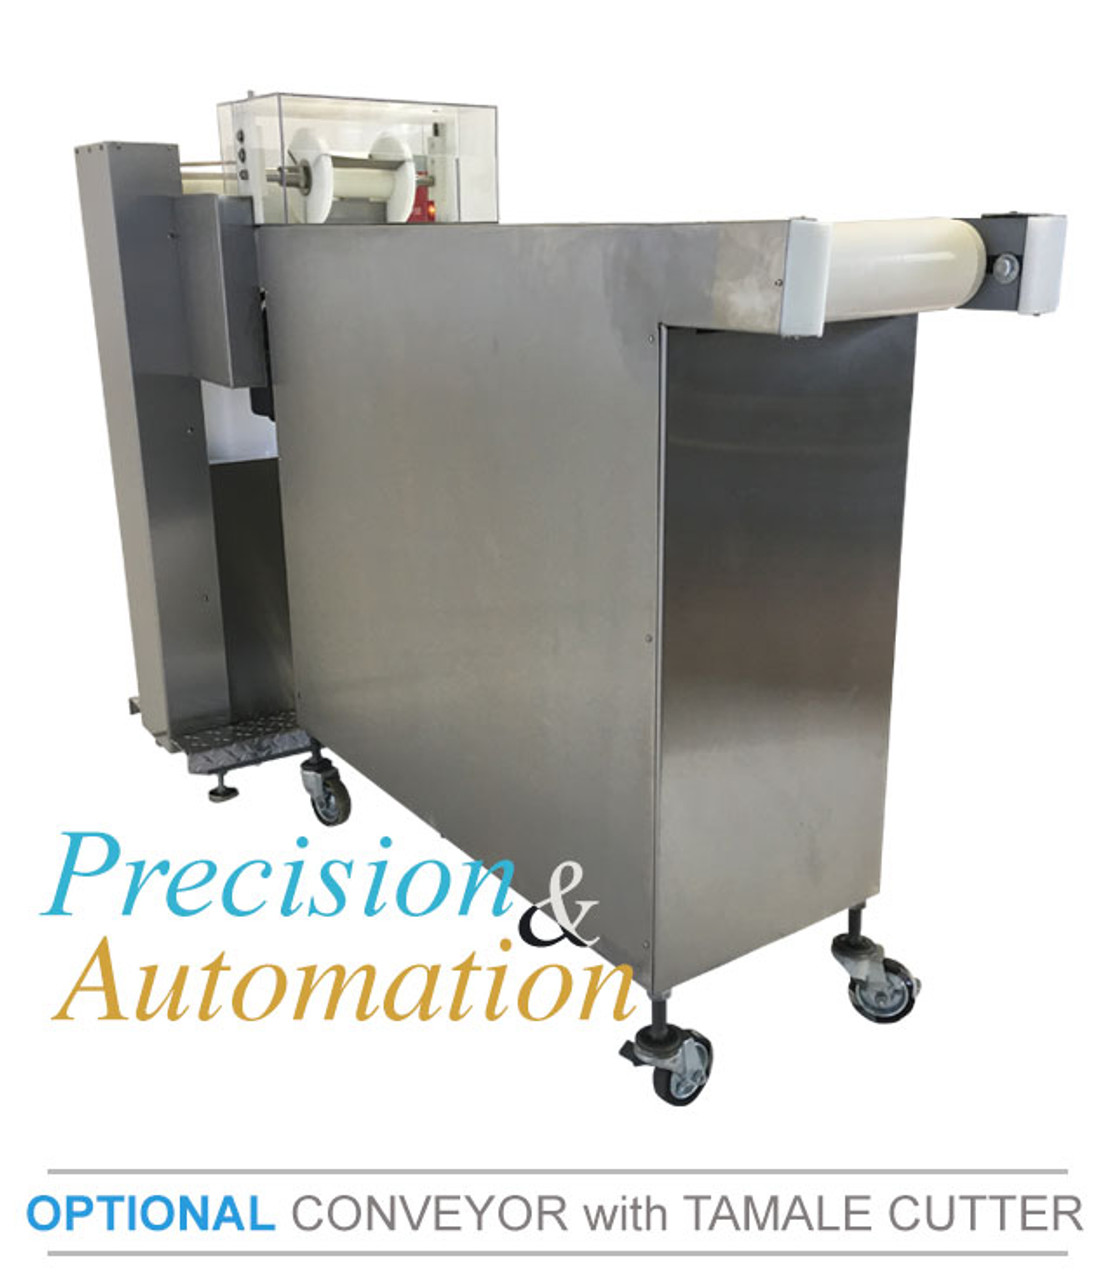 Optional: Conveyor with Tamale Cutter